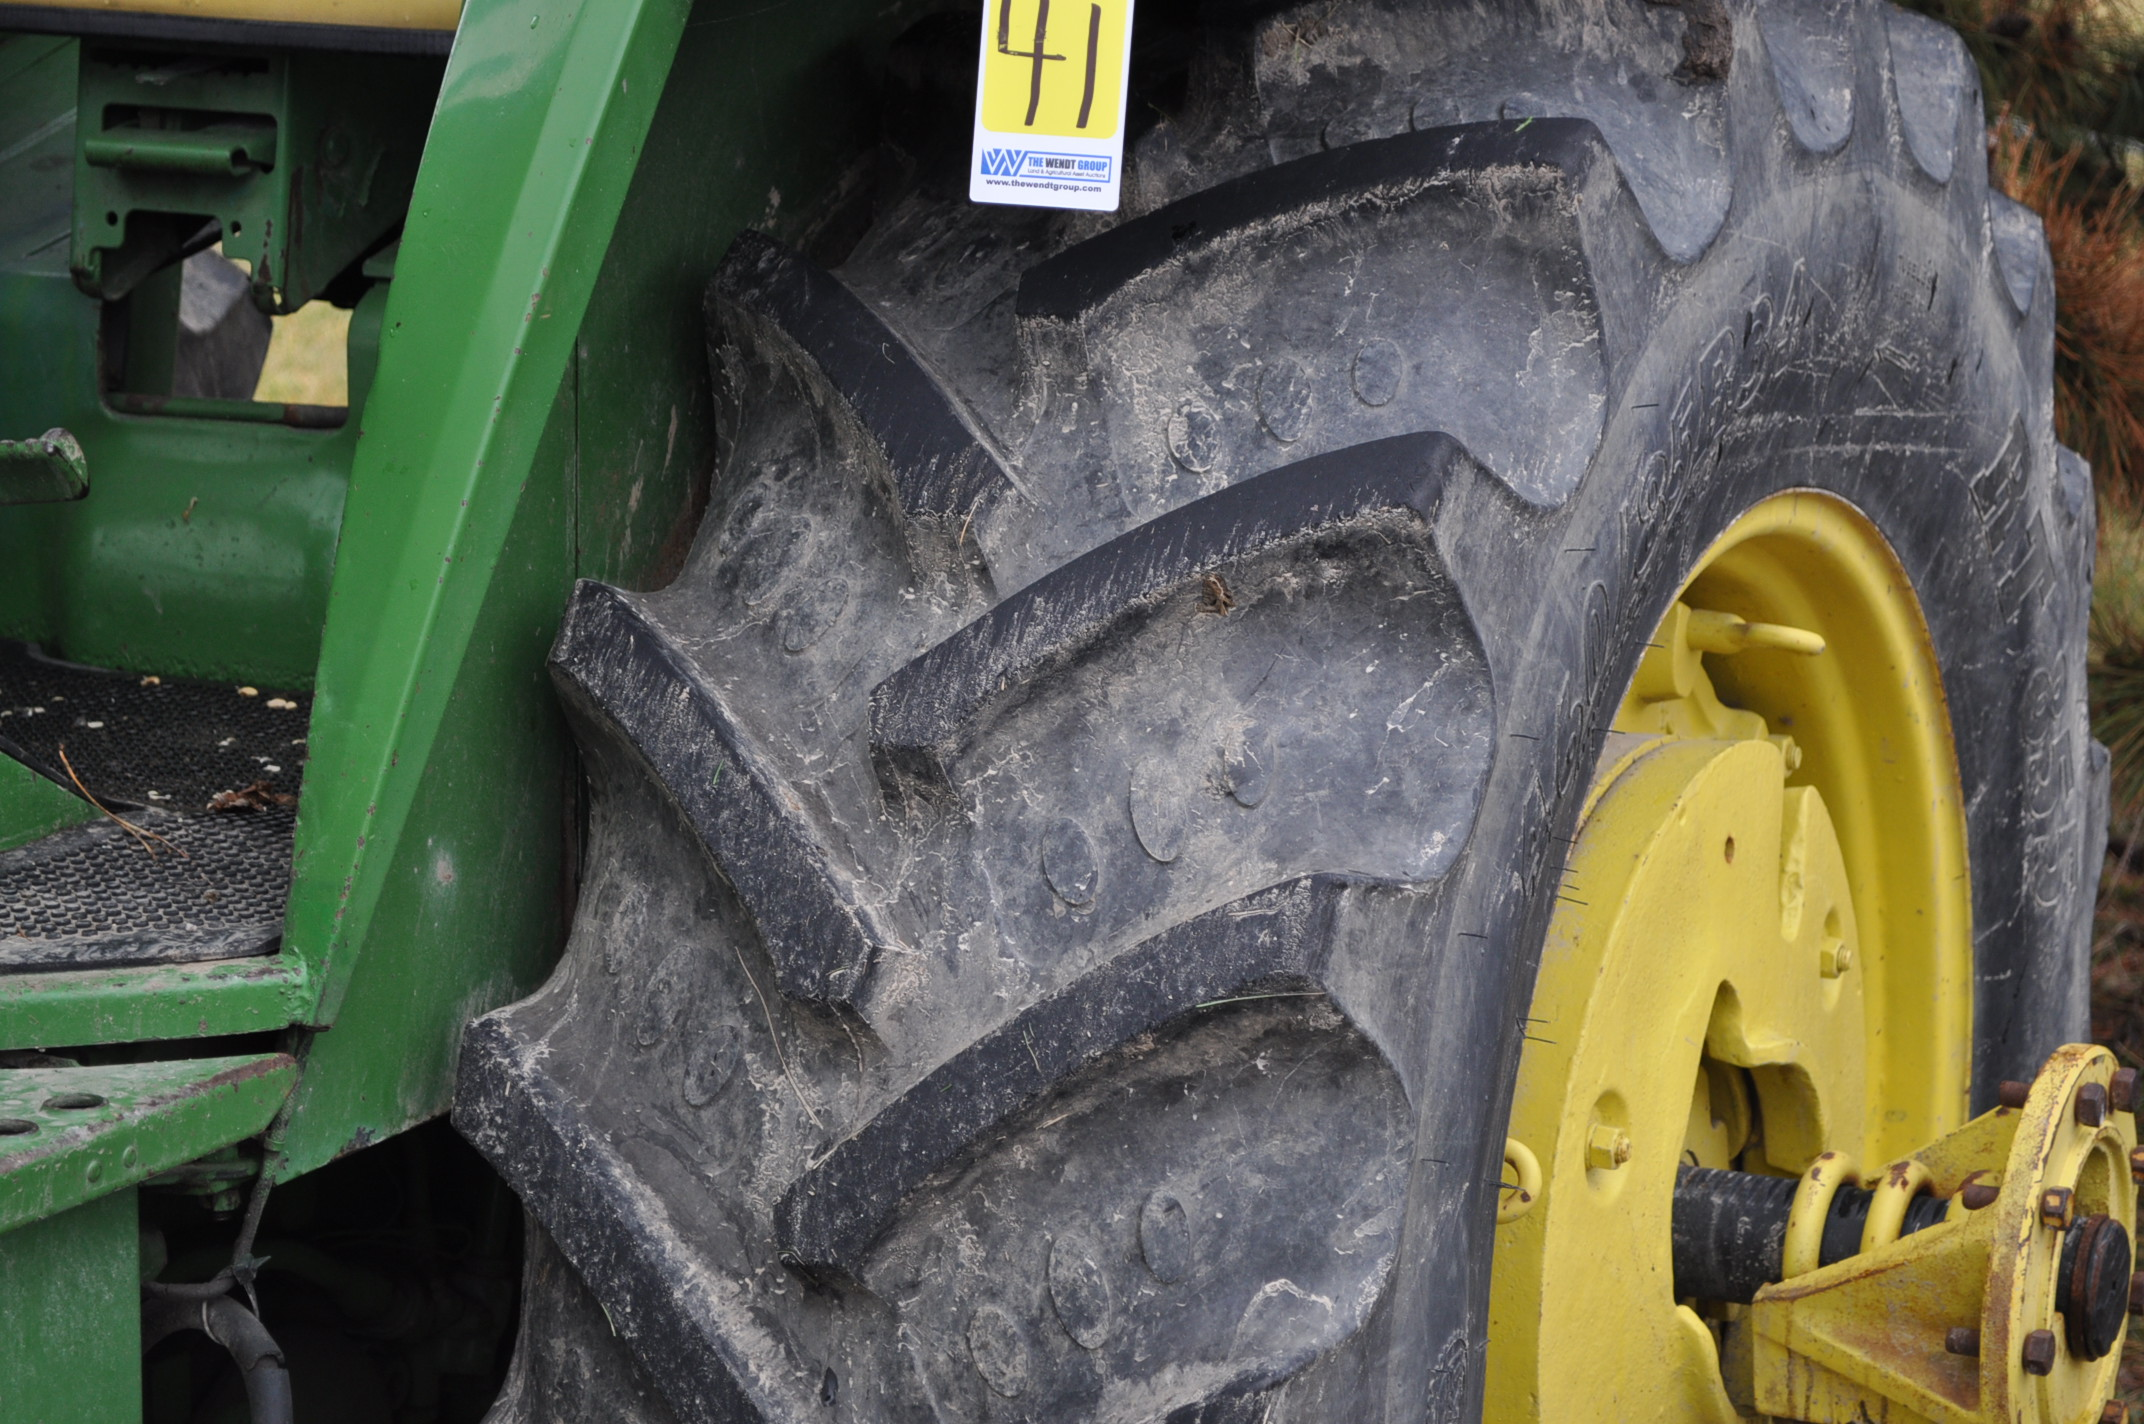 John Deere 4030 tractor, diesel, 18.4-34 rear duals, rear wts, 9.5-15 front, 4-post canopy, Syncro, - Image 6 of 26